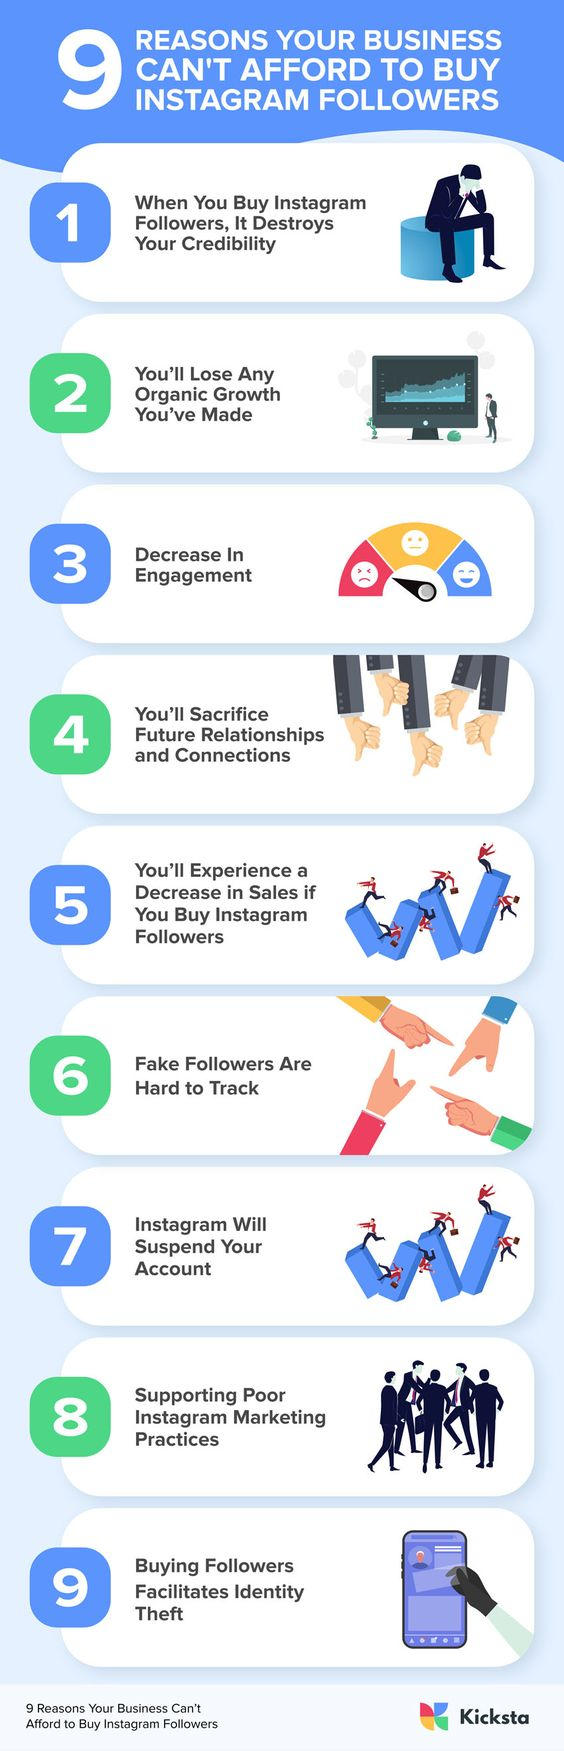 9 Reasons Your Business Can't Afford To Buy Instagram Followers